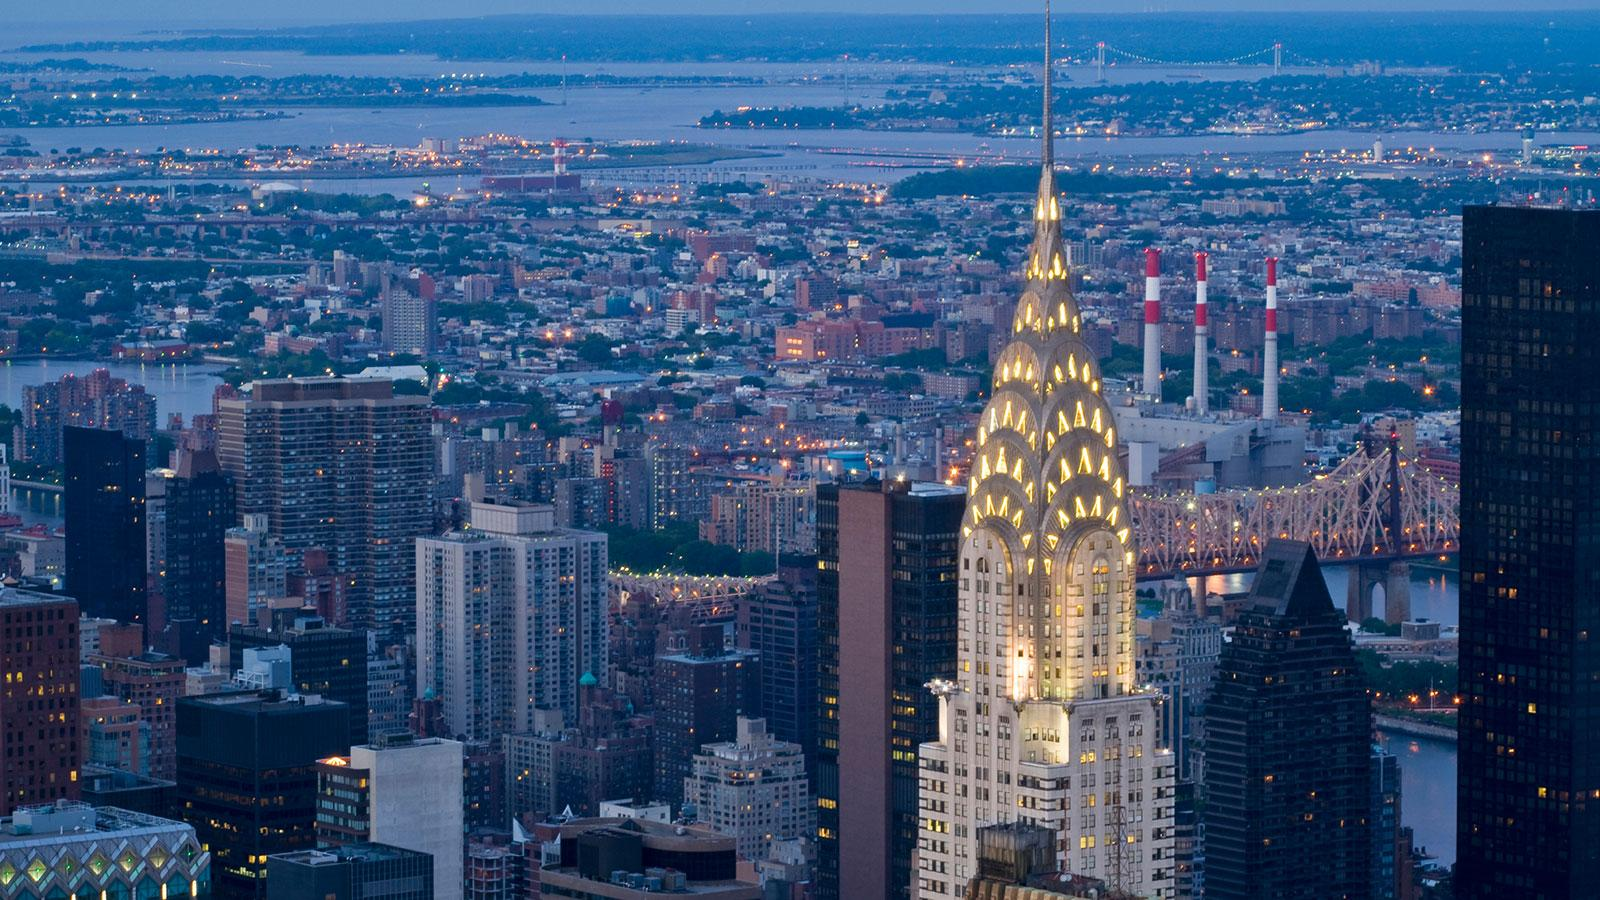 ARCHITECTURE: Amazing Towers/SKYSERS Around The World on chrysler ru, chrysler minivan design, chrysler lhs, chrysler 200 replacement, chrysler radio wire colors, chrysler ss, chrysler town and country,